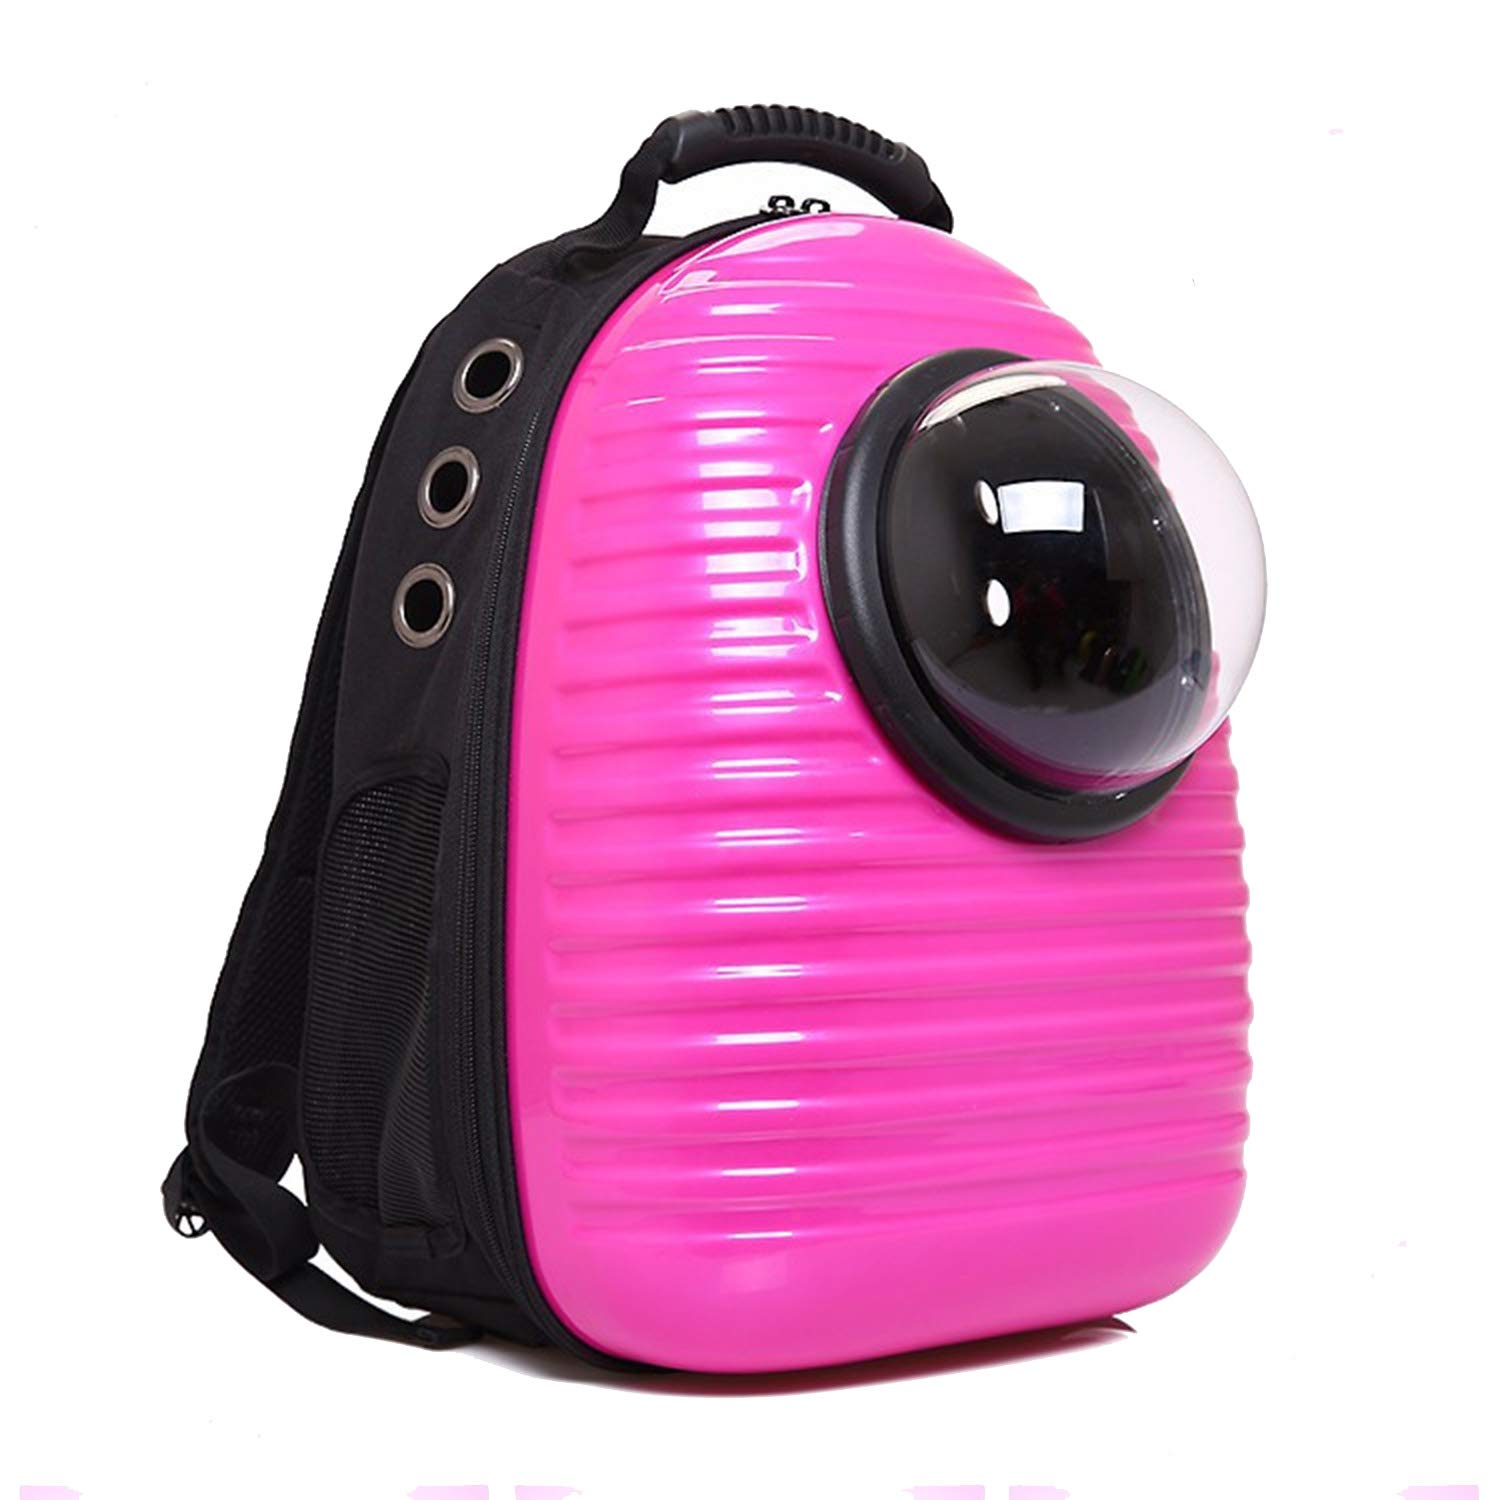 E Pet Bag Carrying Out A Backpack Space Capsule Pet Bag Dog Backpack Takeaway Cat Bag 30X26X44cm